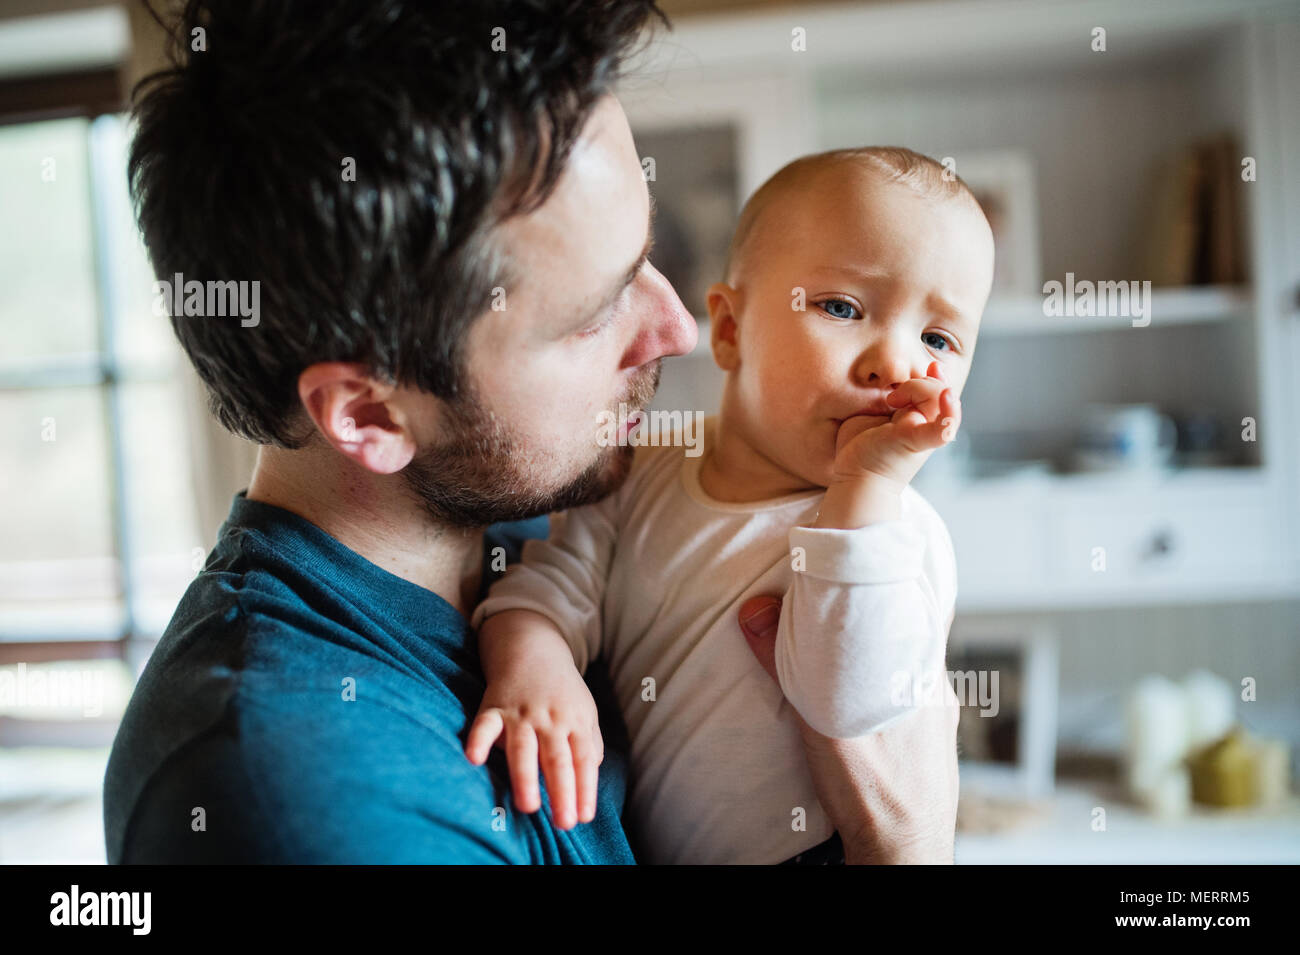 Father with a baby girl at home. - Stock Image